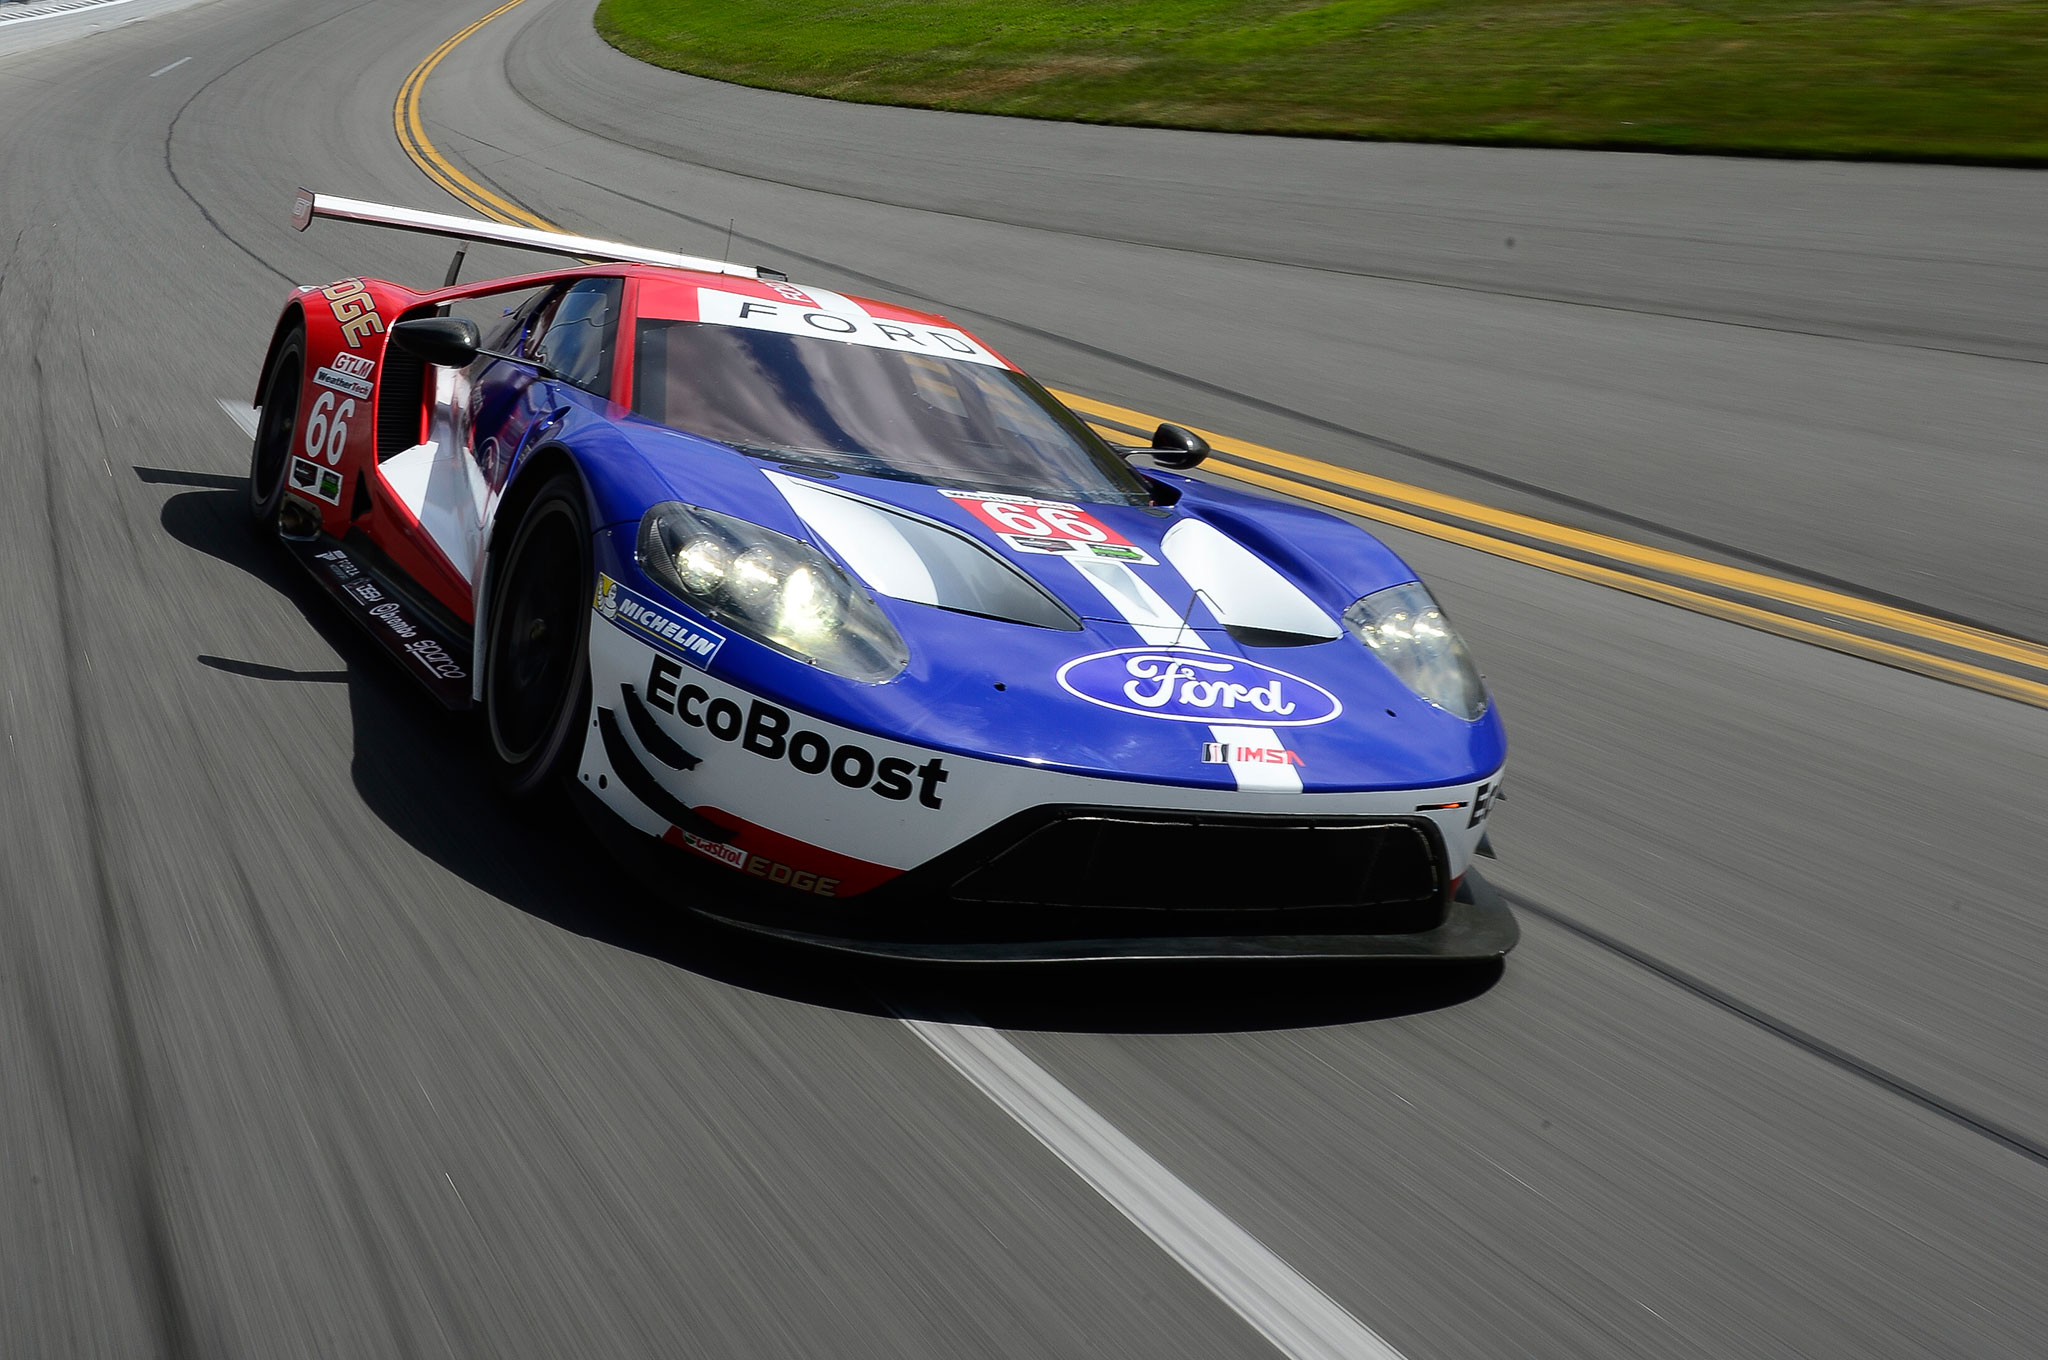 Chasing History The New Ford Gt Goes Racing